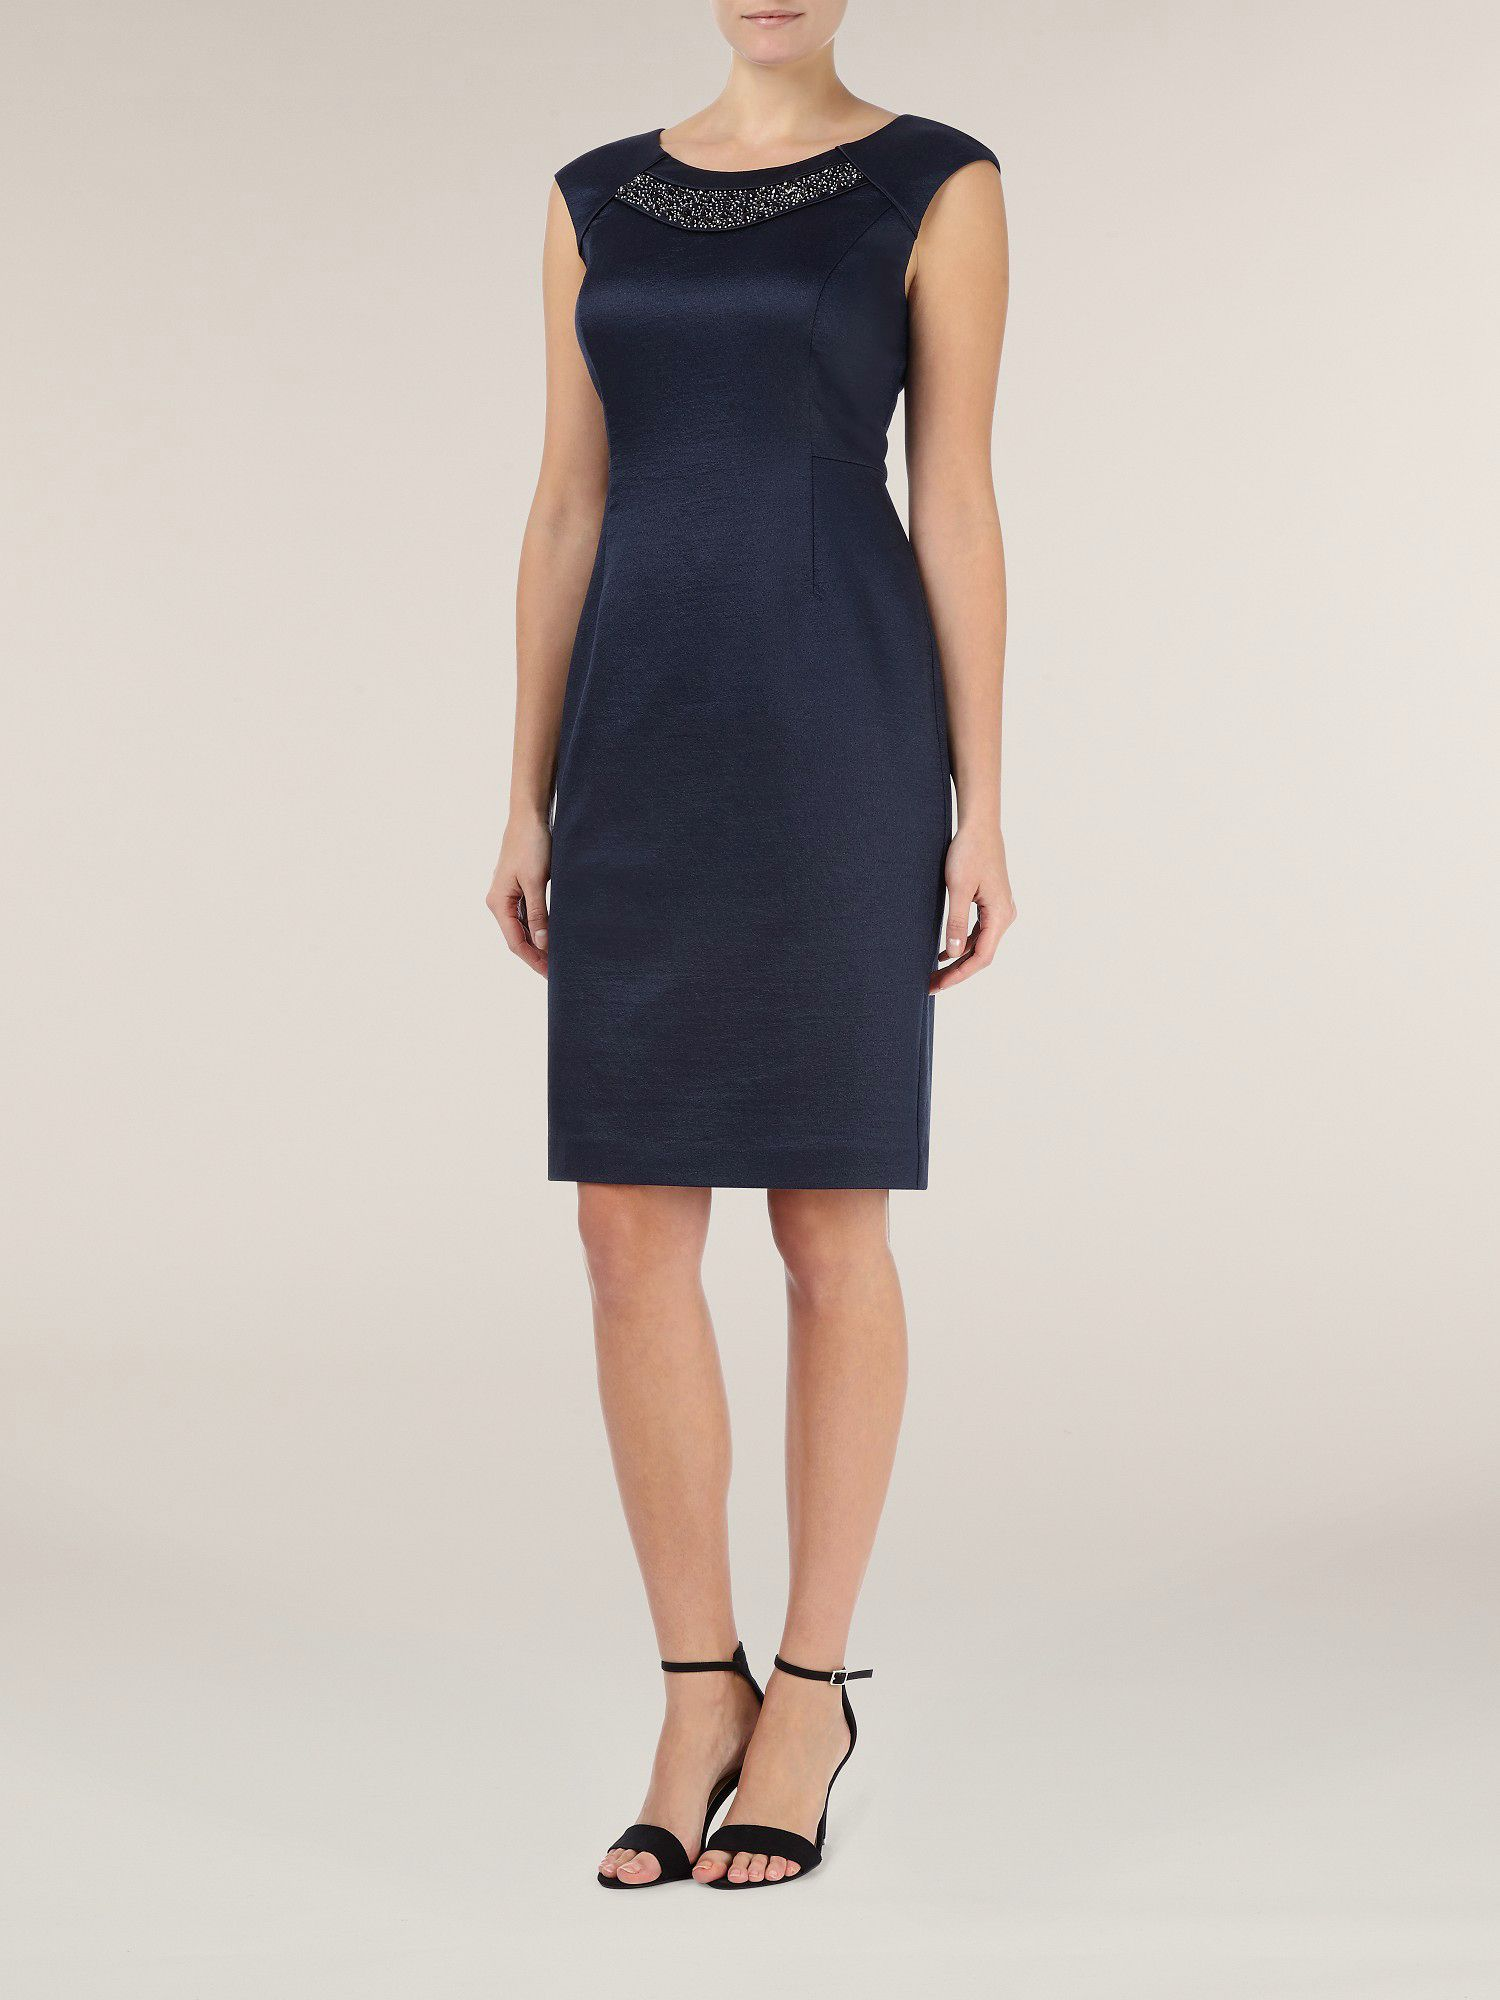 Navy embellished neck dress